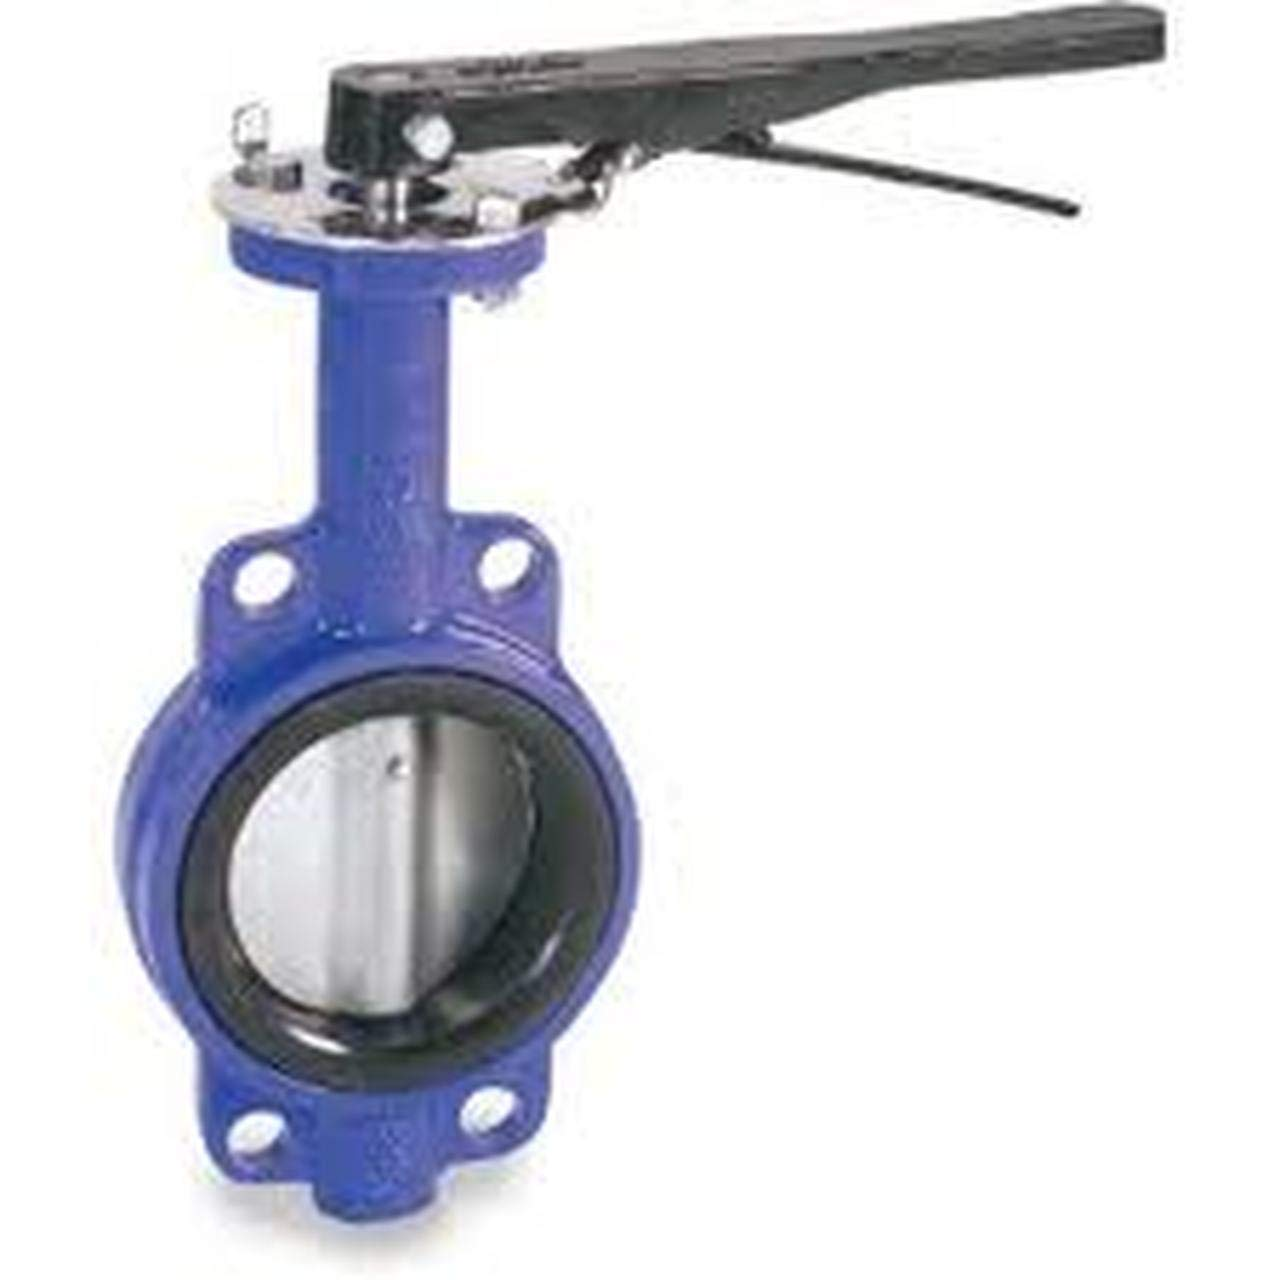 Cast Iron Lever Operated Wafer Body Butterfly Valve Nickle Plated Disc Buna-N Seat Buna-N 5 in